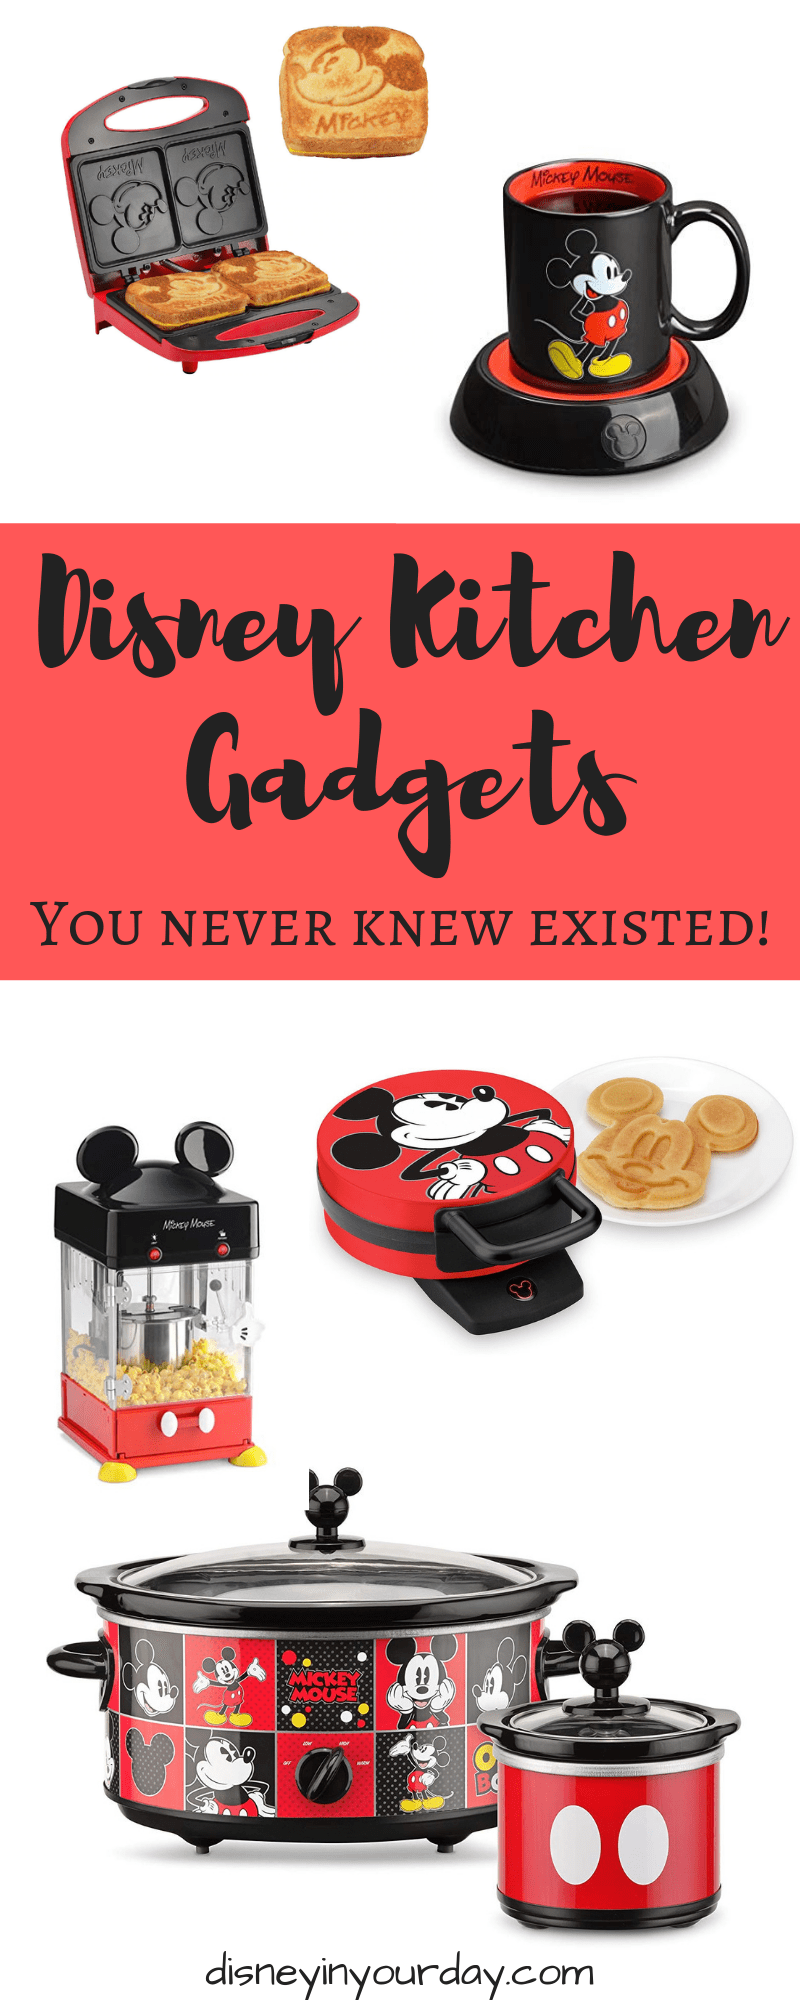 5 Disney Kitchen Gadgets That You Didn't Know Existed - Disney in your Day #disneykitchen